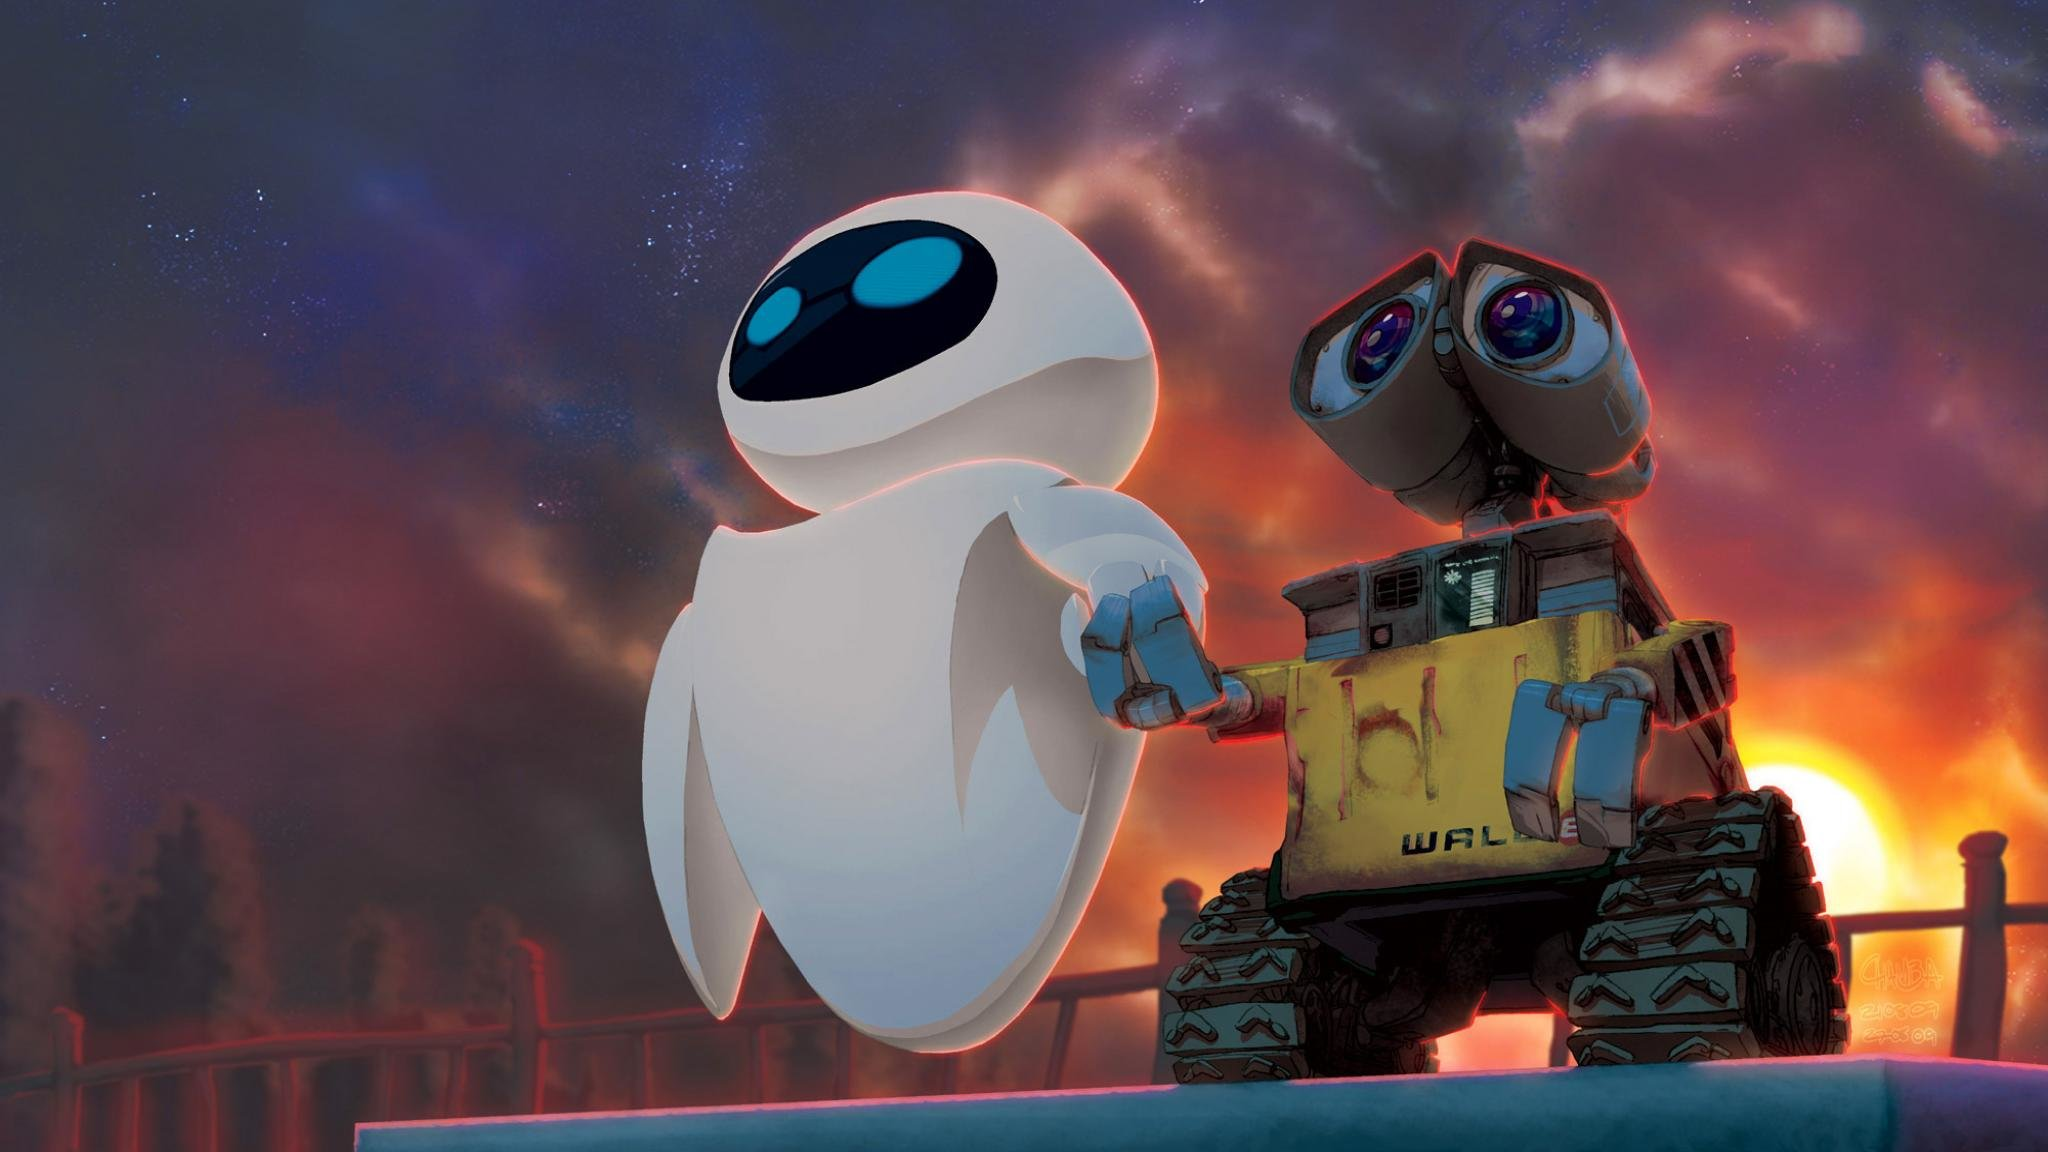 Download hd 2048x1152 Wall.E PC background ID:25924 for free